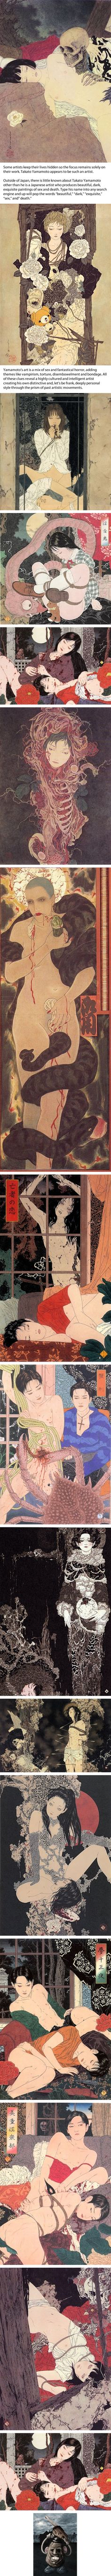 Death is My Lover: The Decadent Erotic Art of Takato Yamamoto